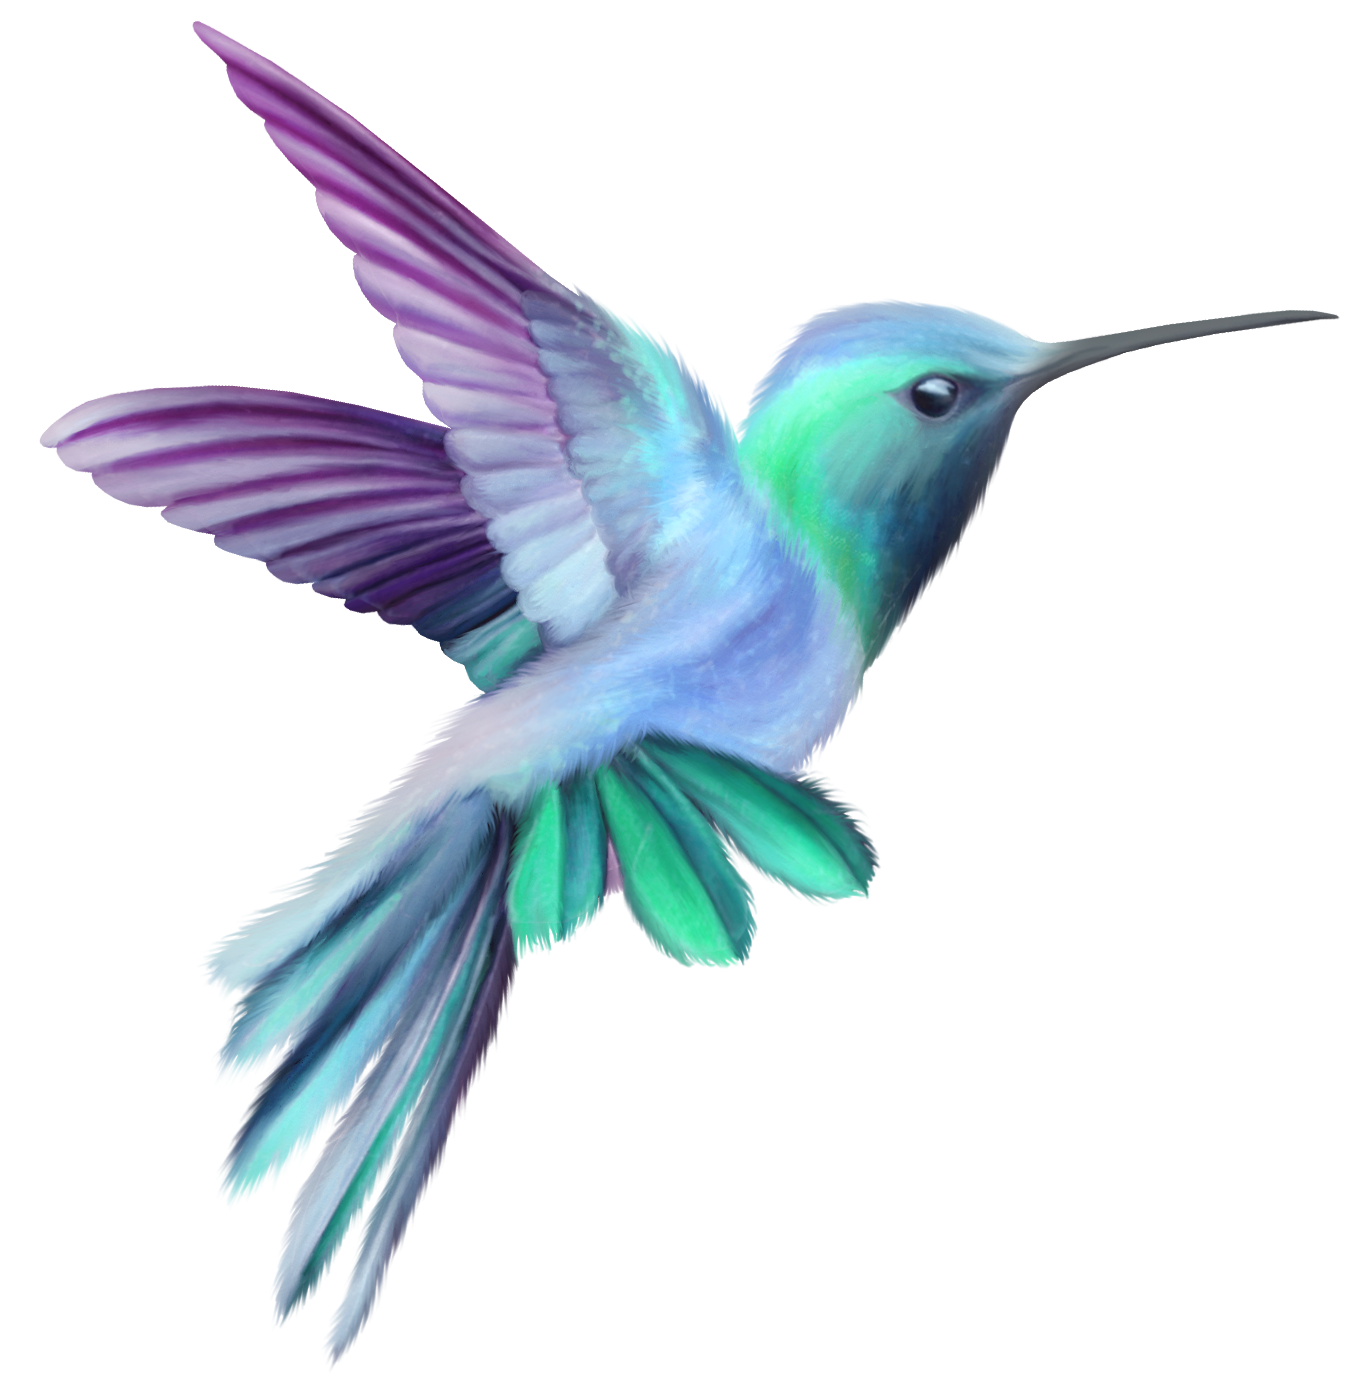 Hummingbird Transparent Clip Art Image | Gallery Yopriceville ... banner transparent library